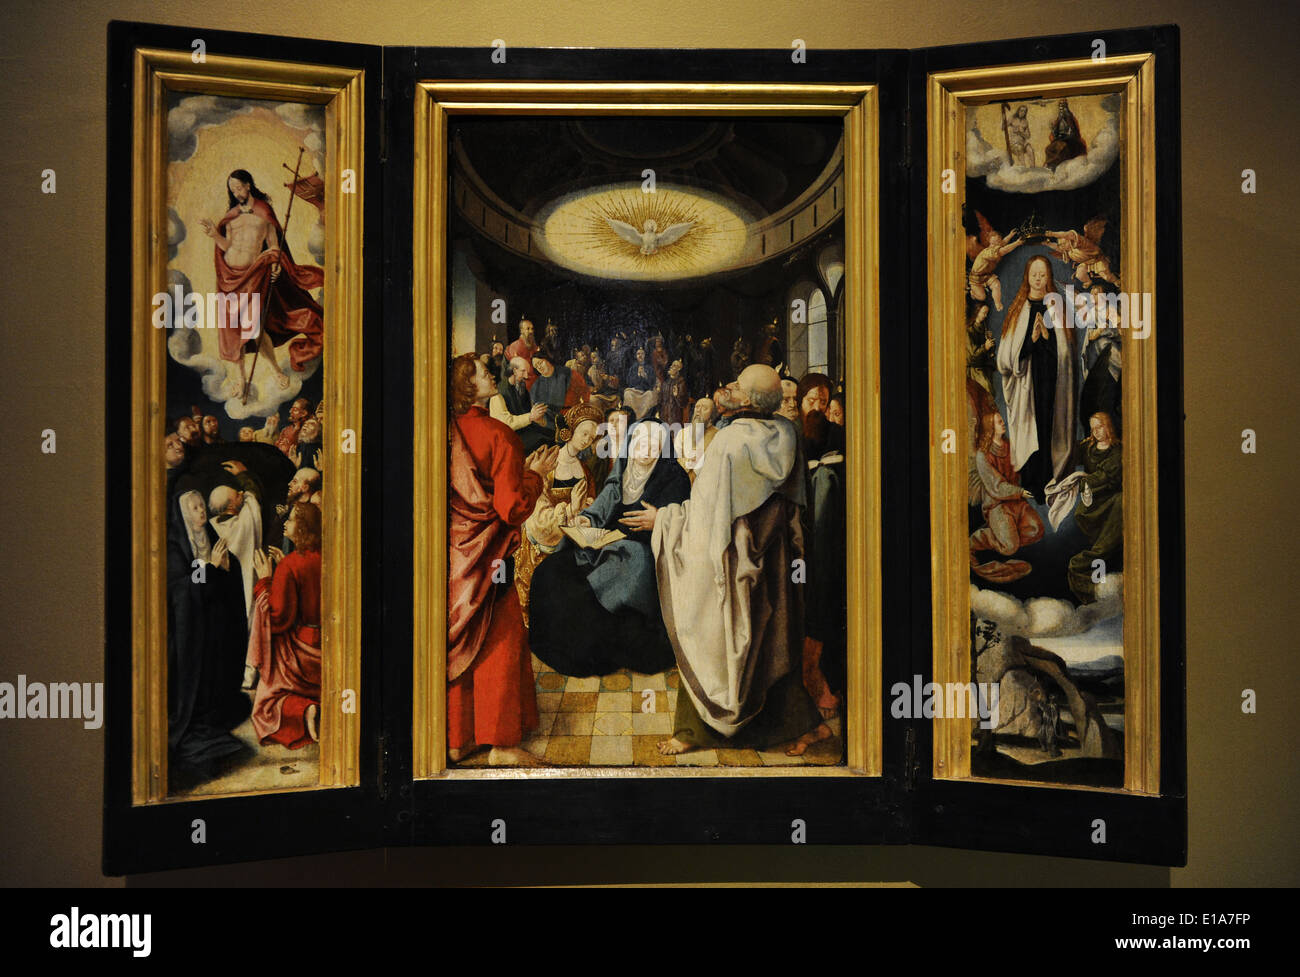 Disciples of Lucas van Leyden (1494-1533). Triptych with Descent of the Holy Spirit. 16th century. - Stock Image